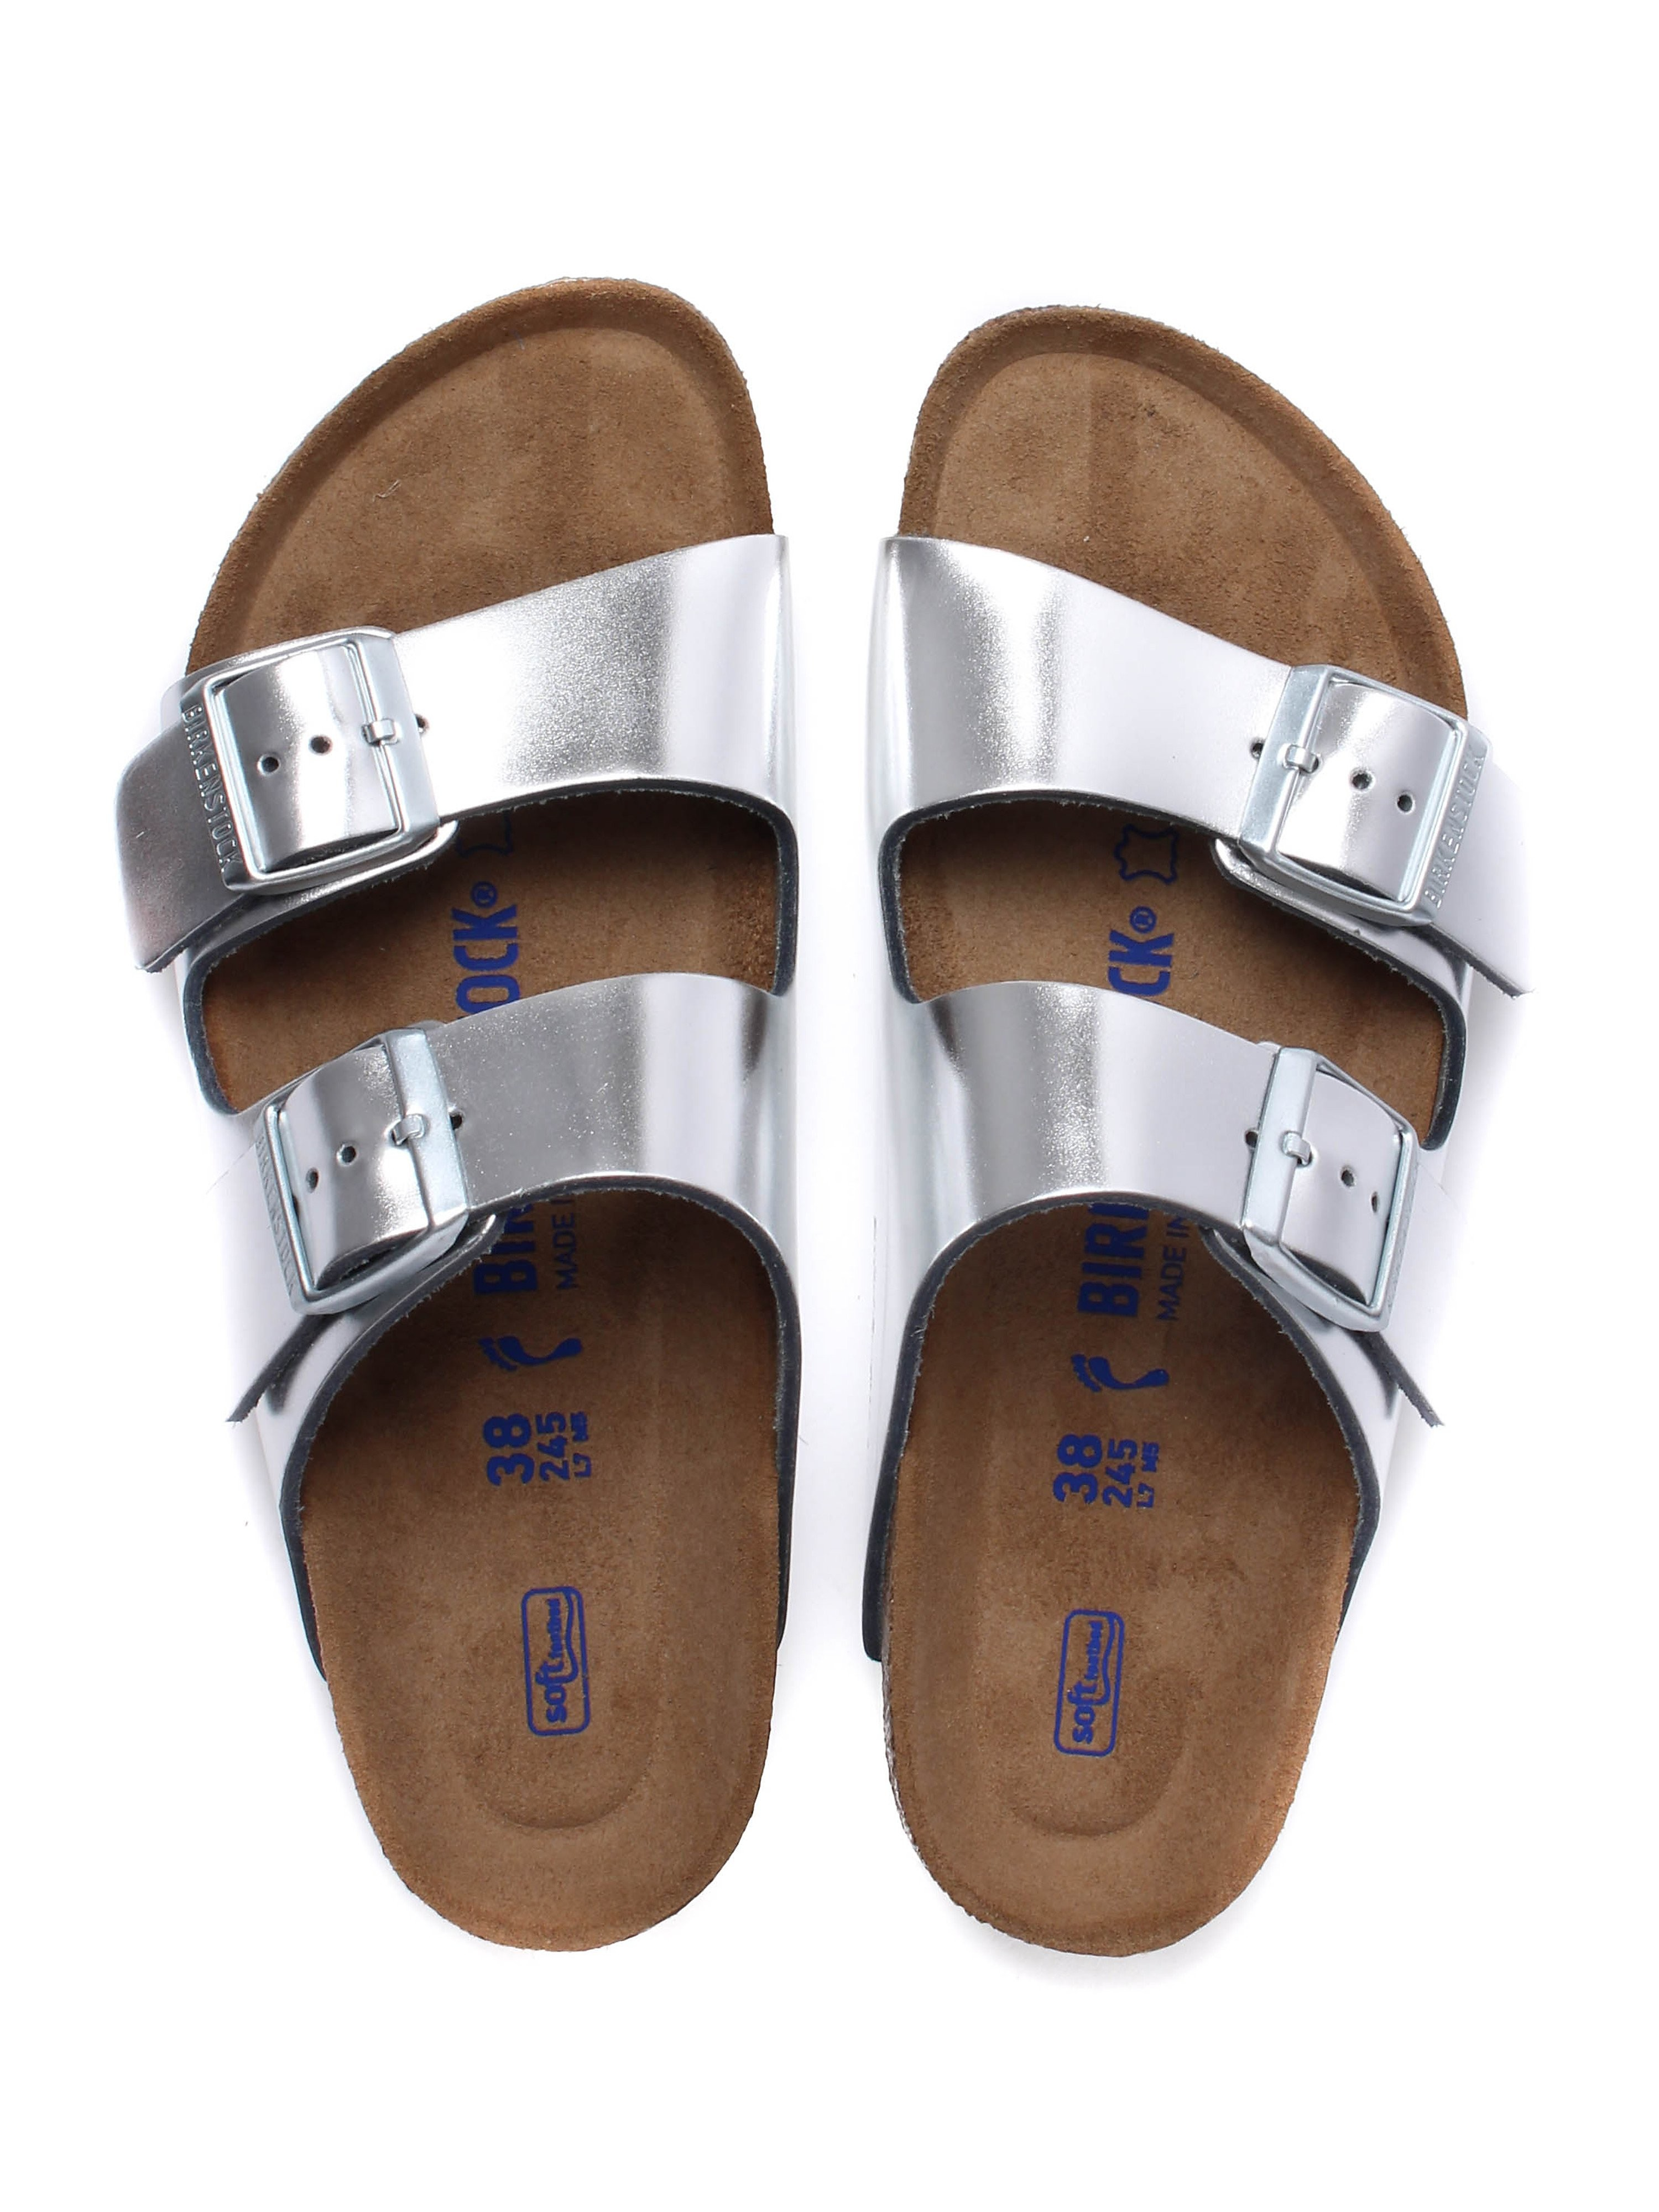 Birkenstock Women's Arizona Narrow Fit Leather Sandals - Silver